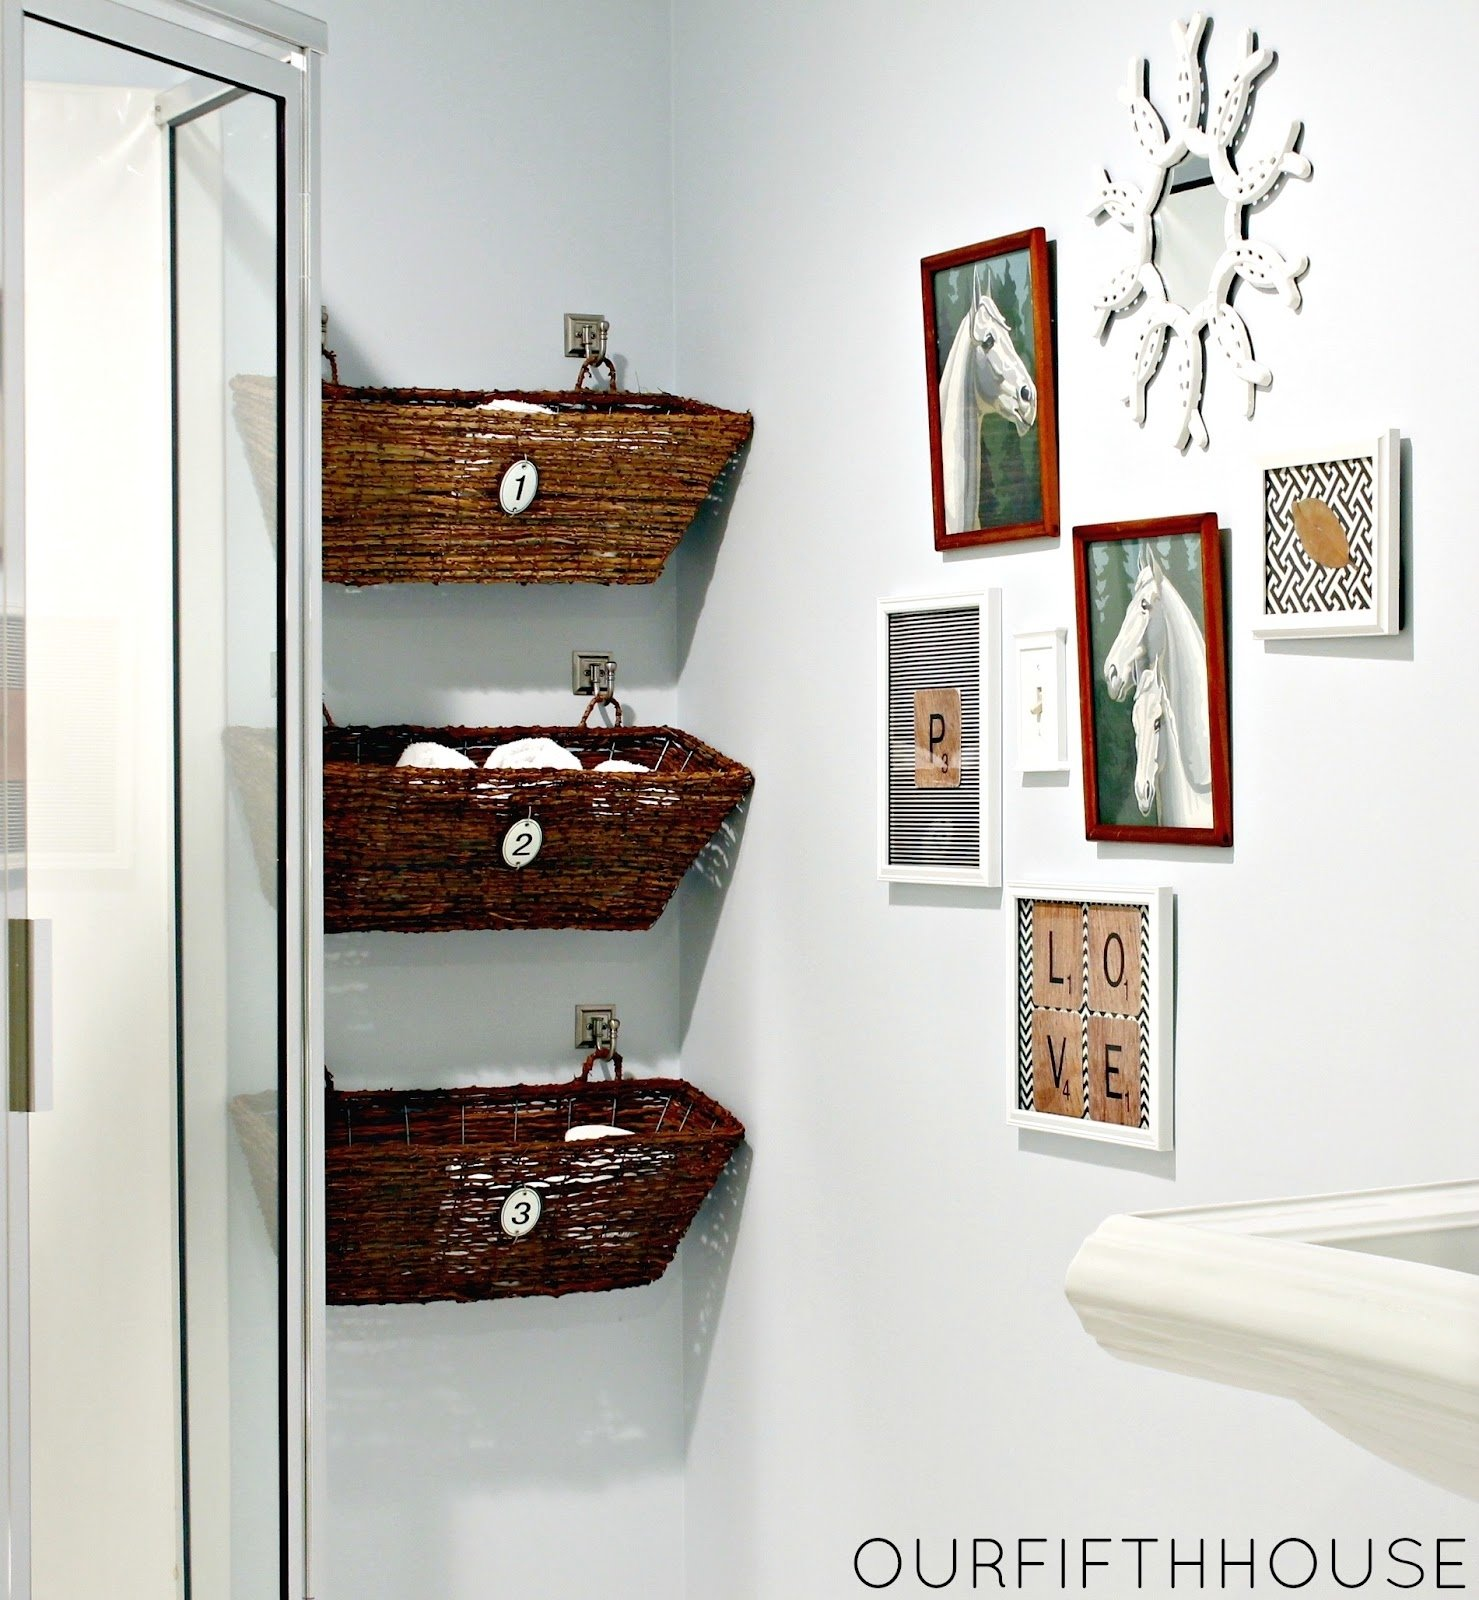 10 Stunning Storage Ideas For Small Bathrooms 3 simple small bathroom storage ideas blogbeen 1 2020